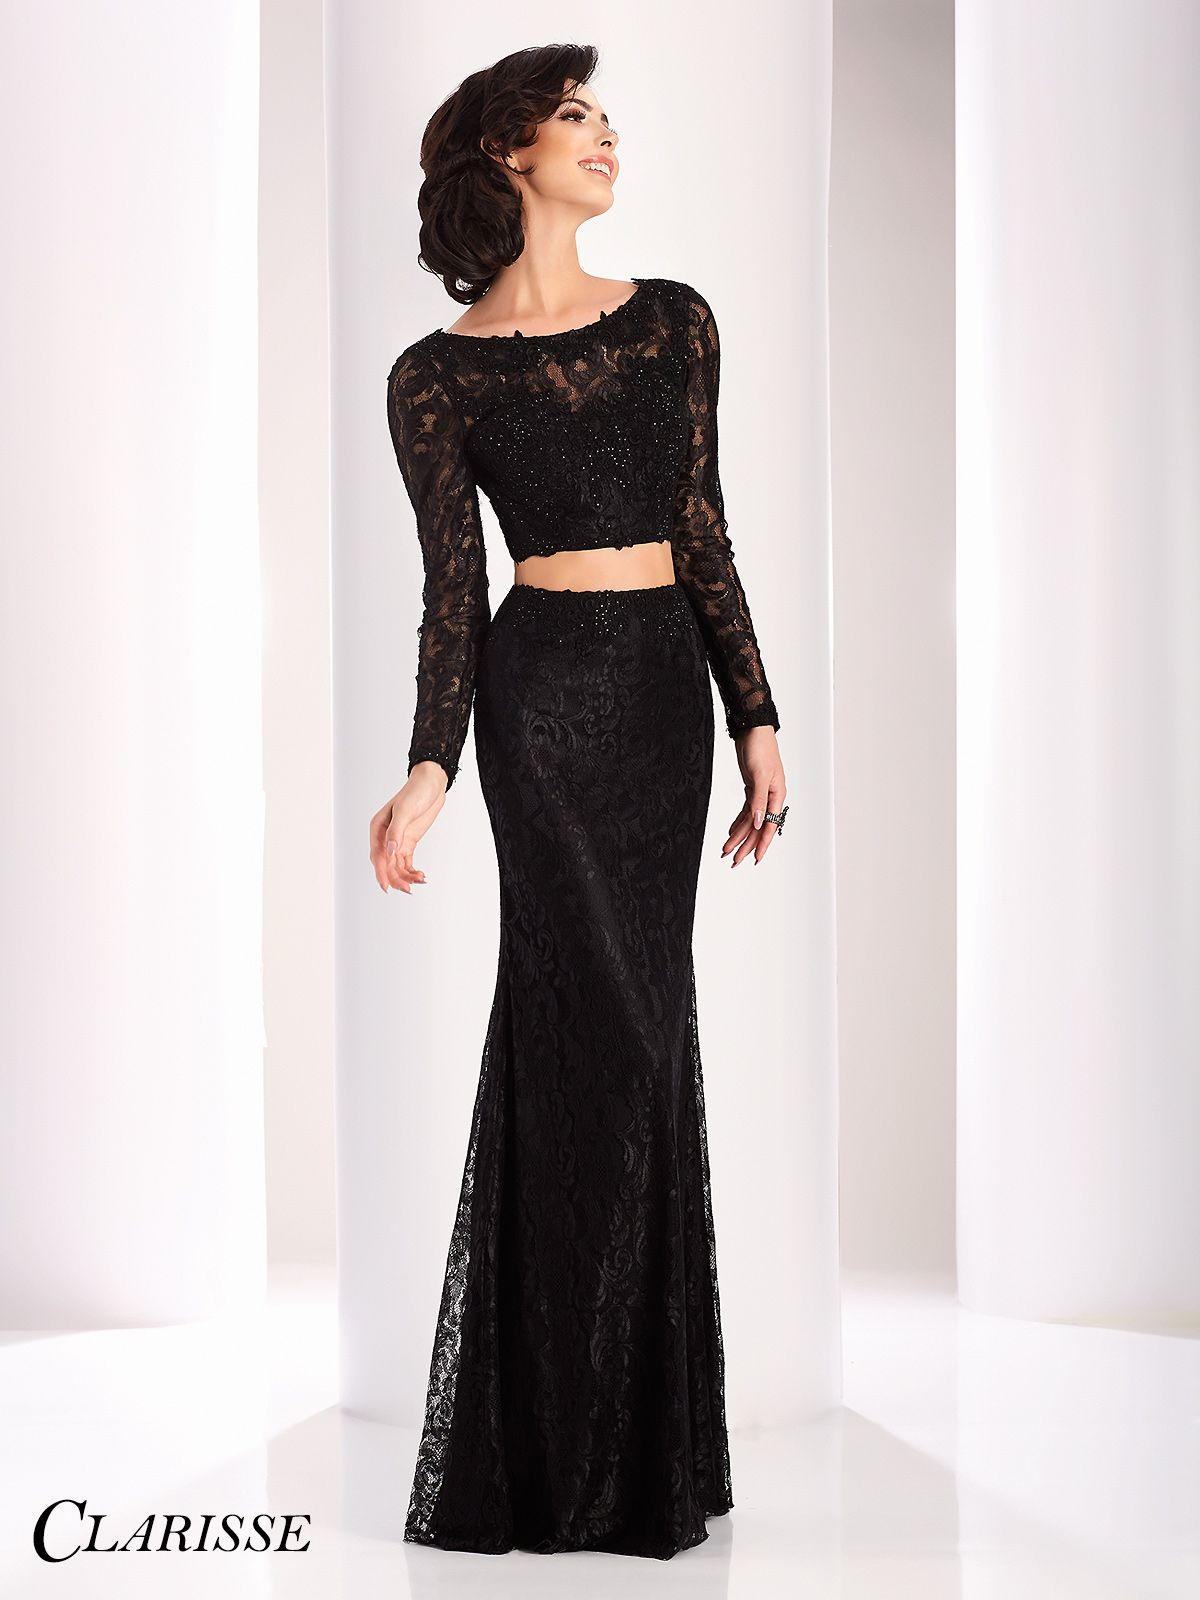 Clarisse long sleeve lace two piece formal dresses